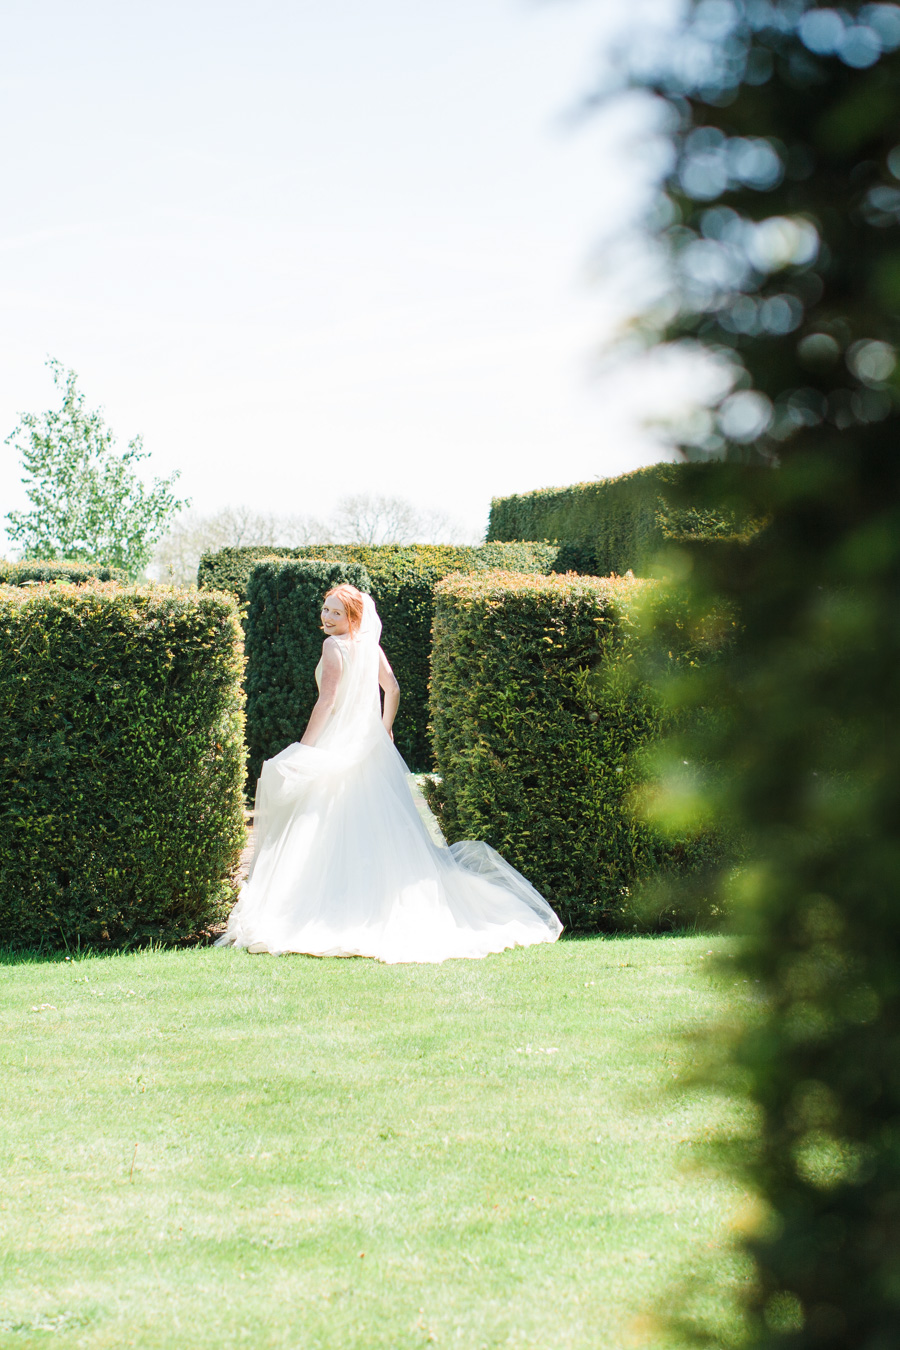 Divine wedding styling with English country garden florals at Pauntley Court, photo credit Red Maple Photography (16)